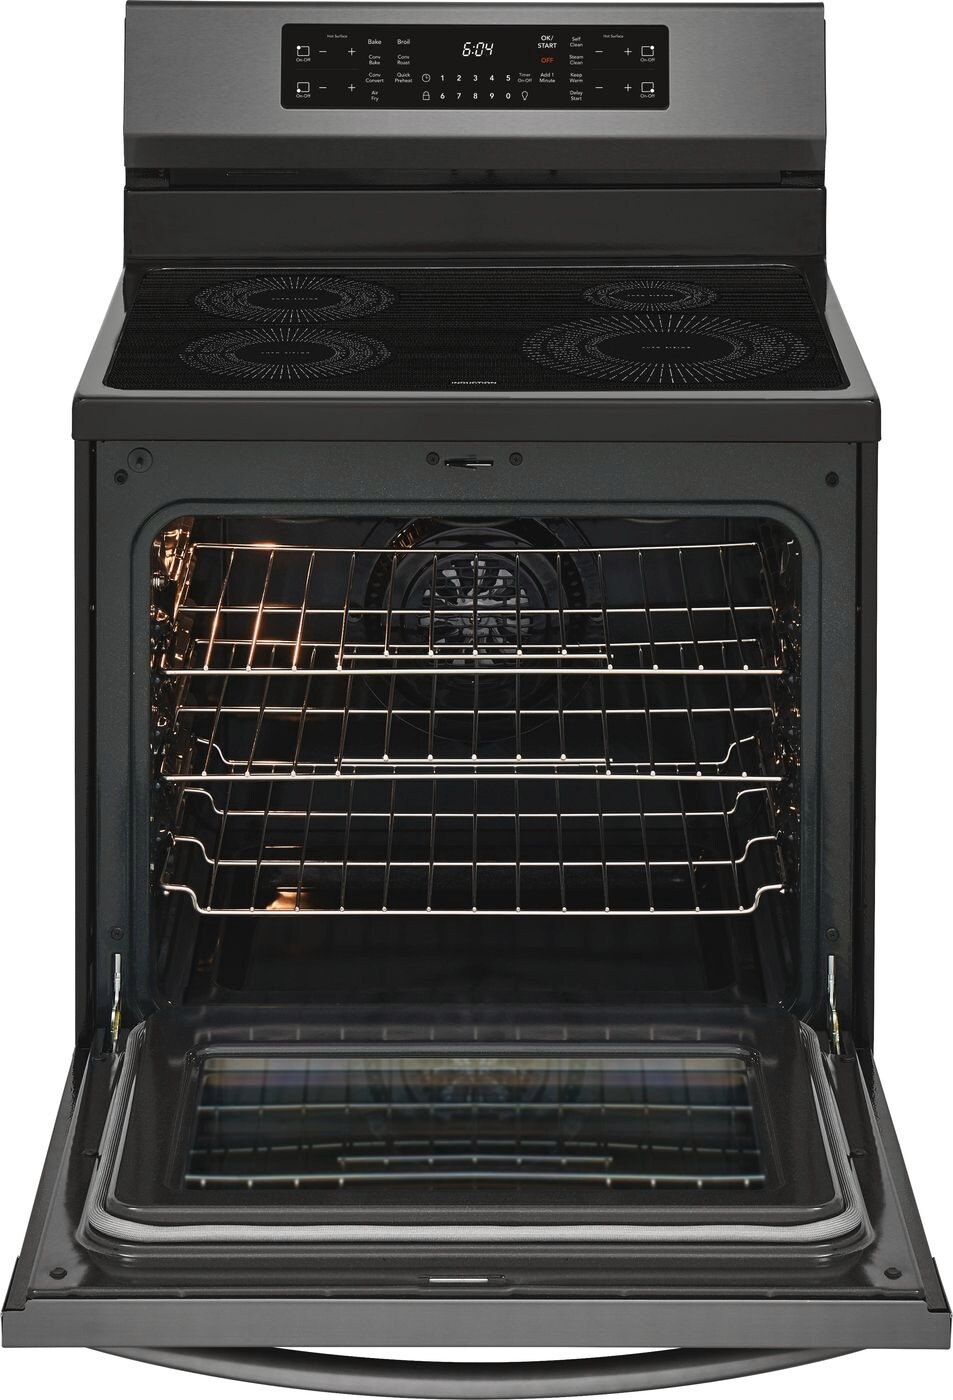 "Model: GCRI3058AD | Frigidaire Gallery 30"" Freestanding Induction Range with Air Fry"